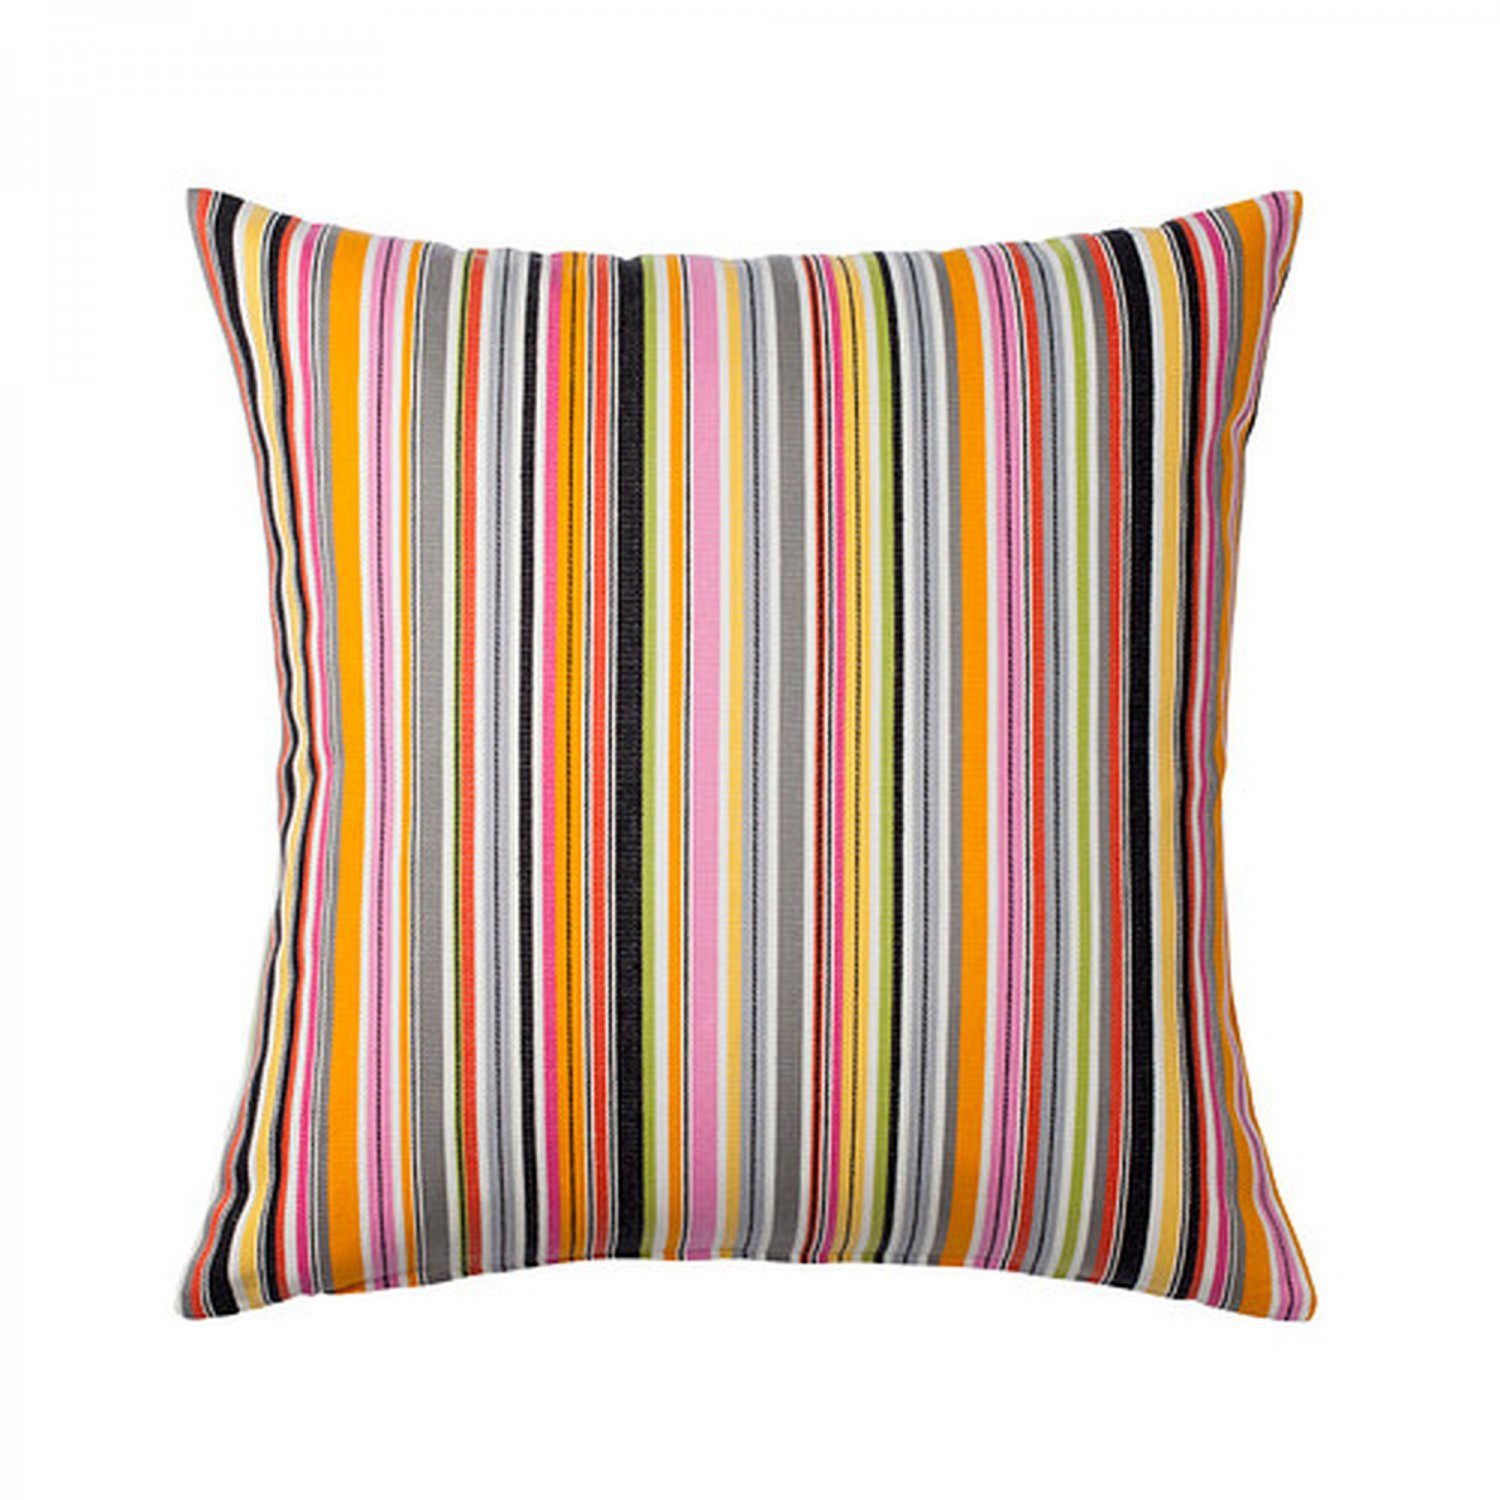 ikea akervallmo cushion cover pillow sham multicolor stripe 20 x 20 kervallmo patio. Black Bedroom Furniture Sets. Home Design Ideas